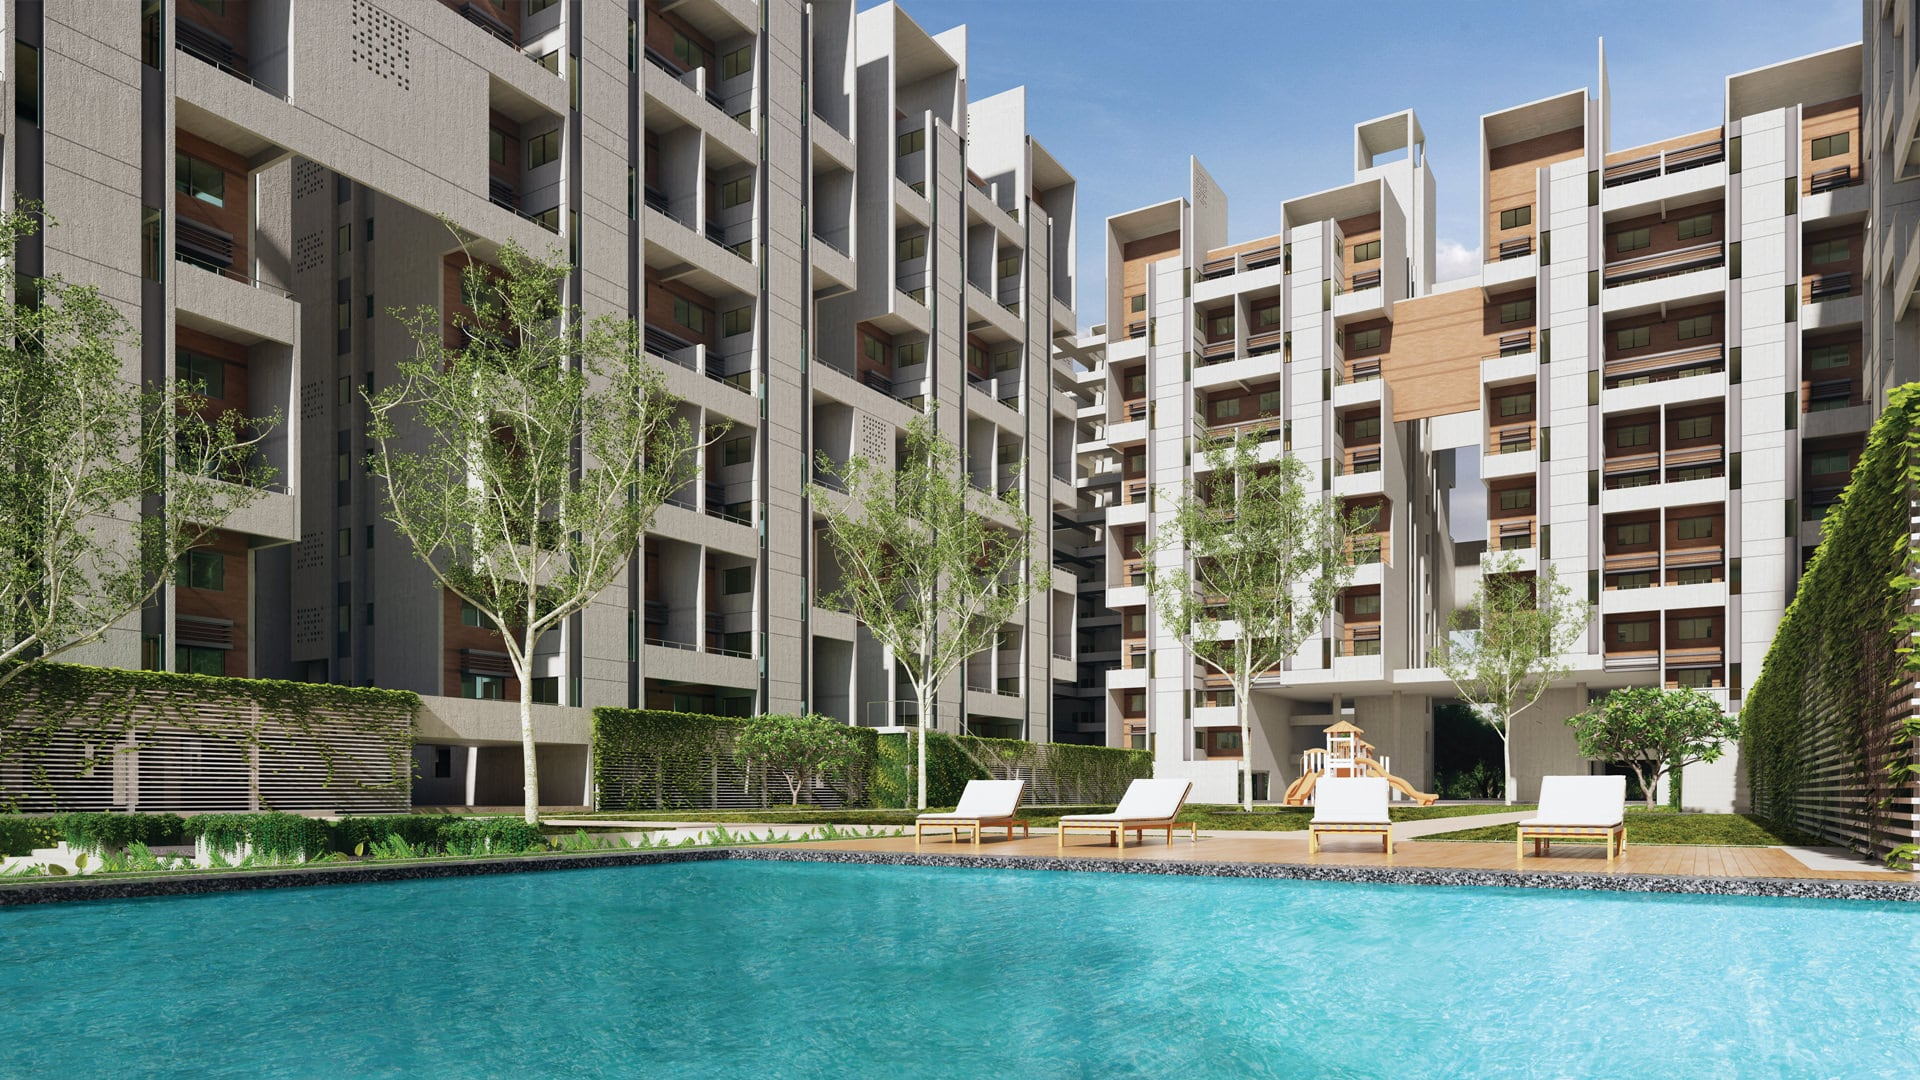 Buy Flats In Pune Buy Flats In Wagholi Rohan Abhilasha